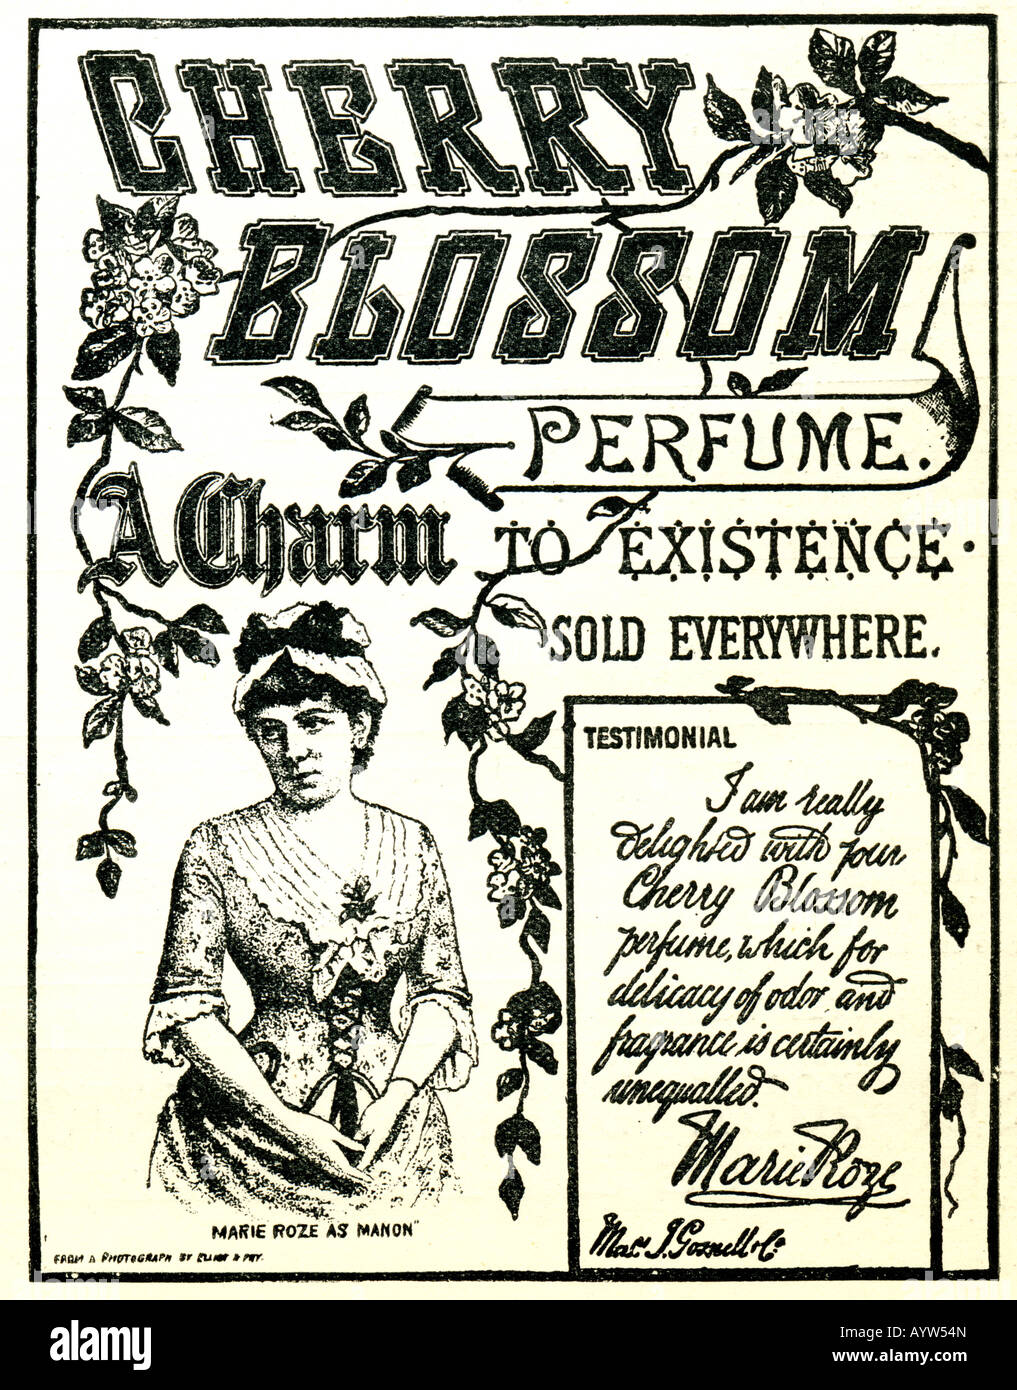 Victorian advertisement 1886 for Cherry Blossom Perfume with testimonial by actress Marie Roze FOR EDITORIAL USE - Stock Image